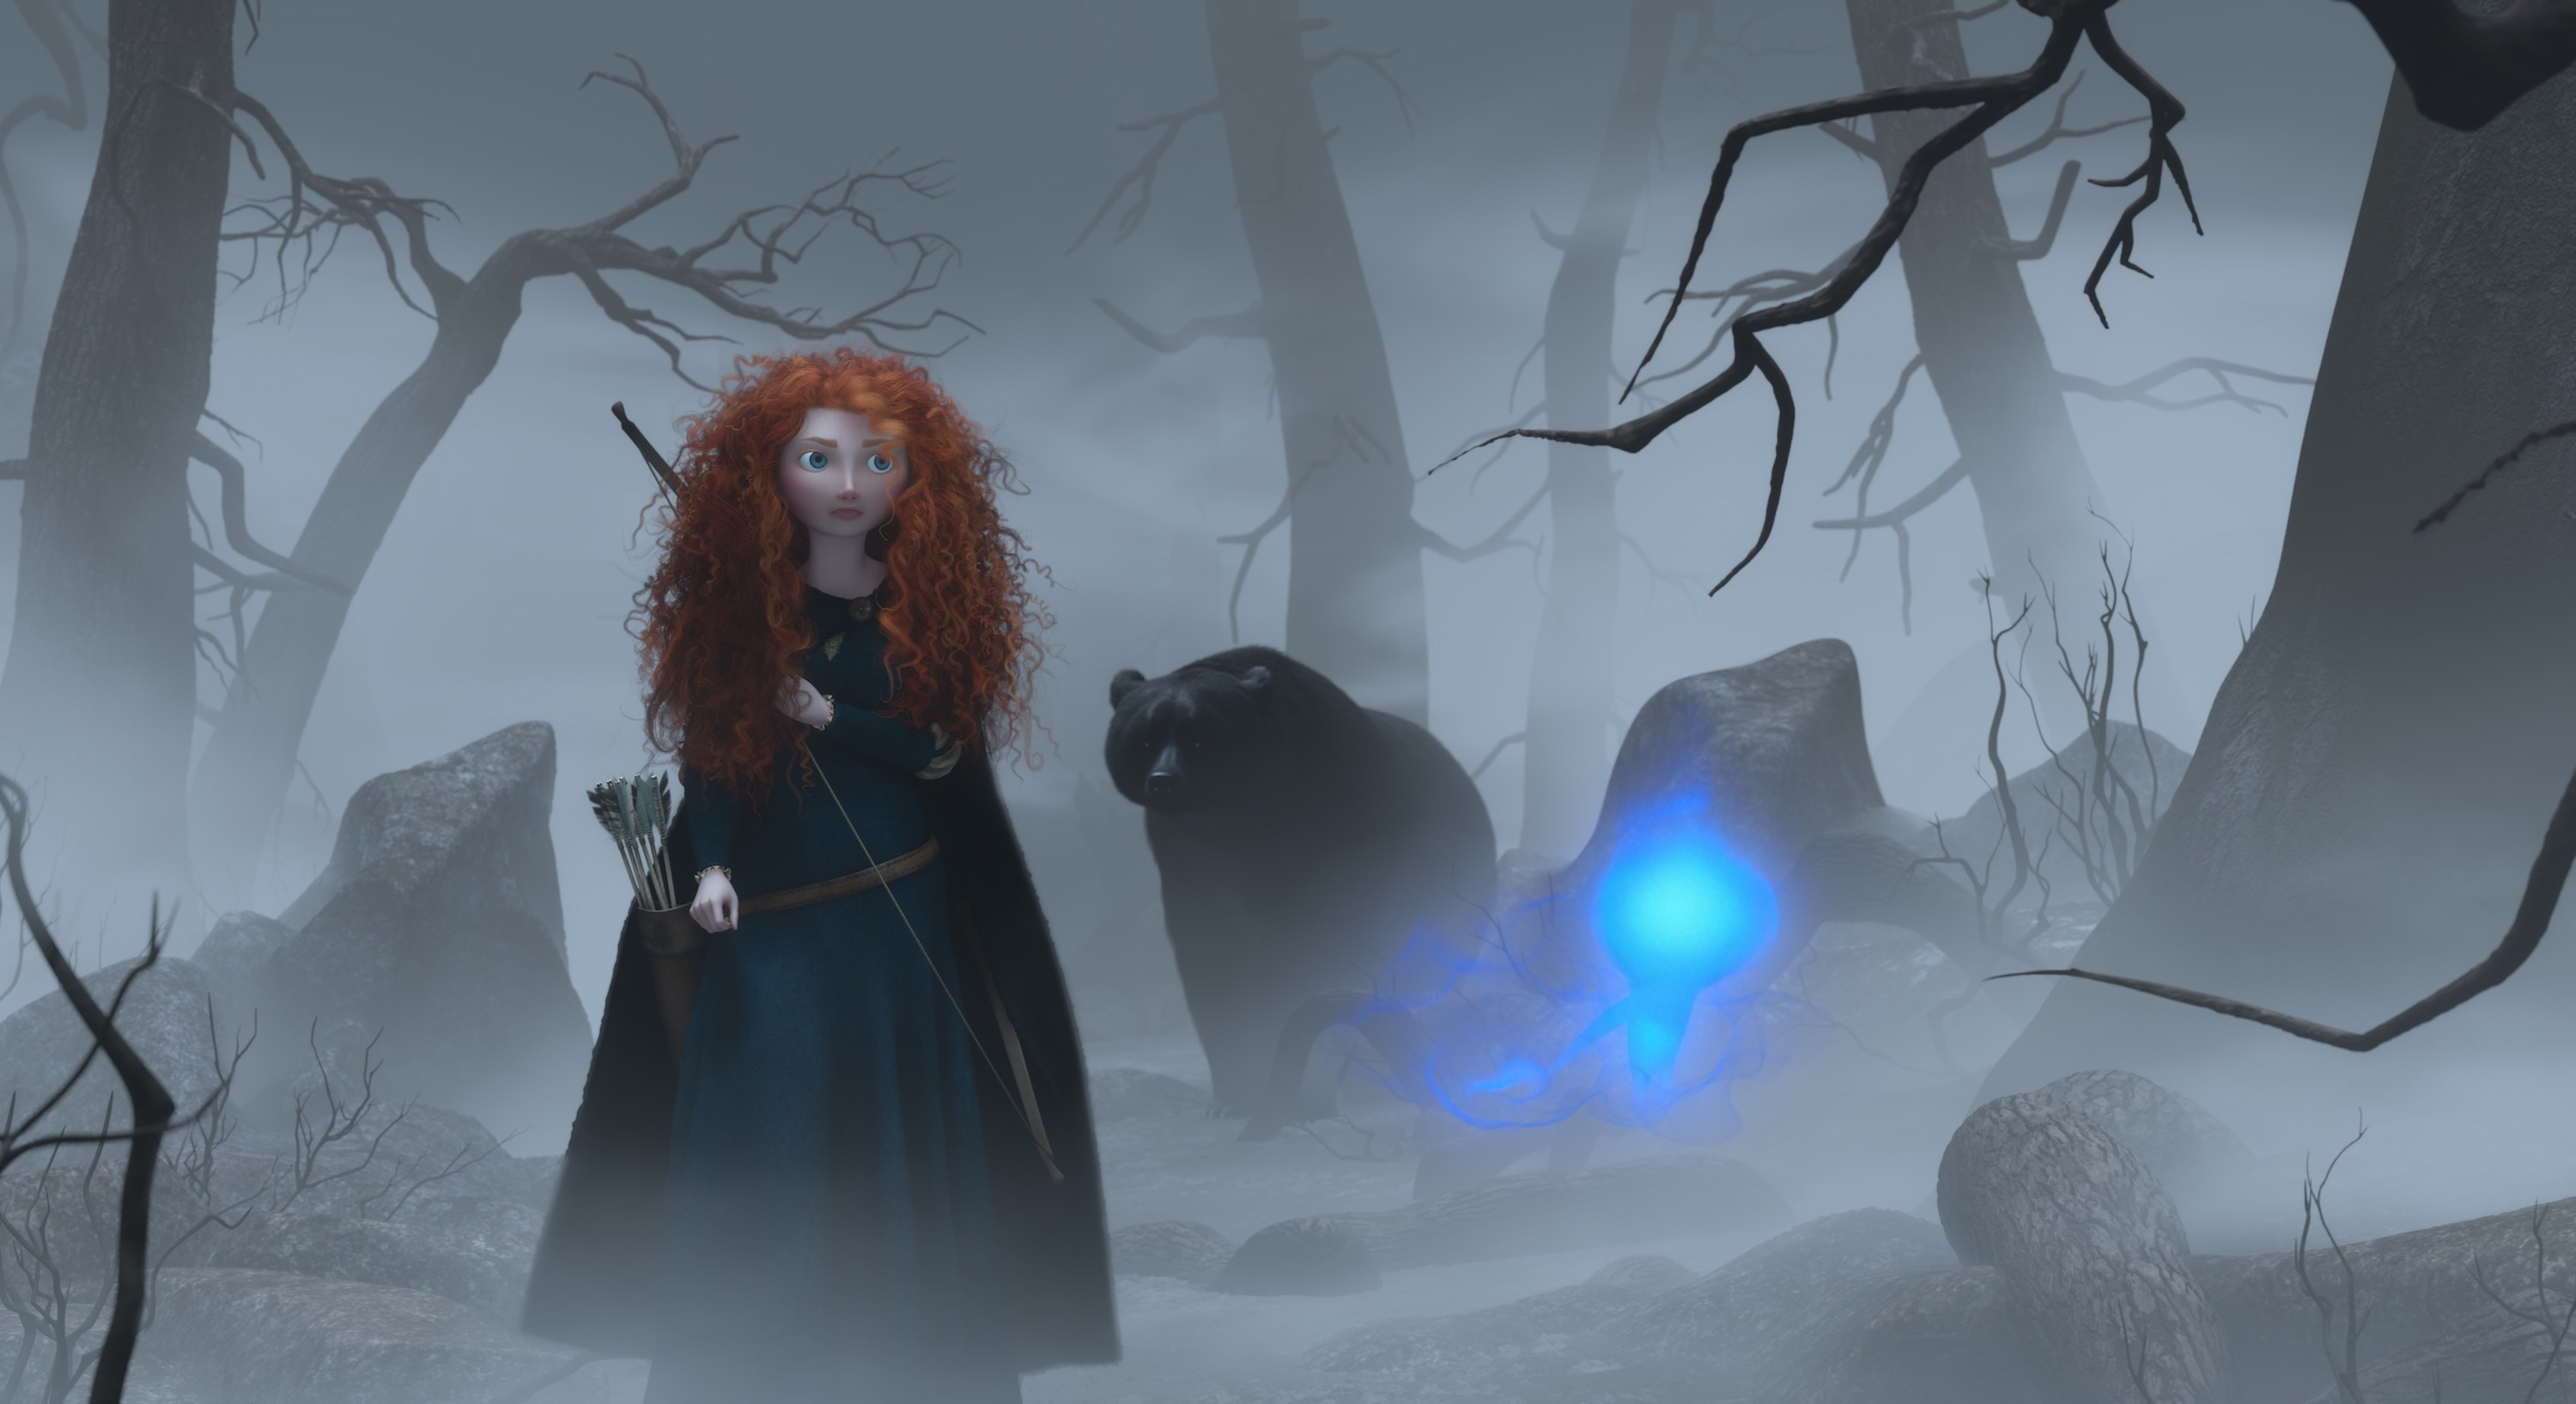 New 'Brave' Stills Feature The Bear, Swords, And Mischief